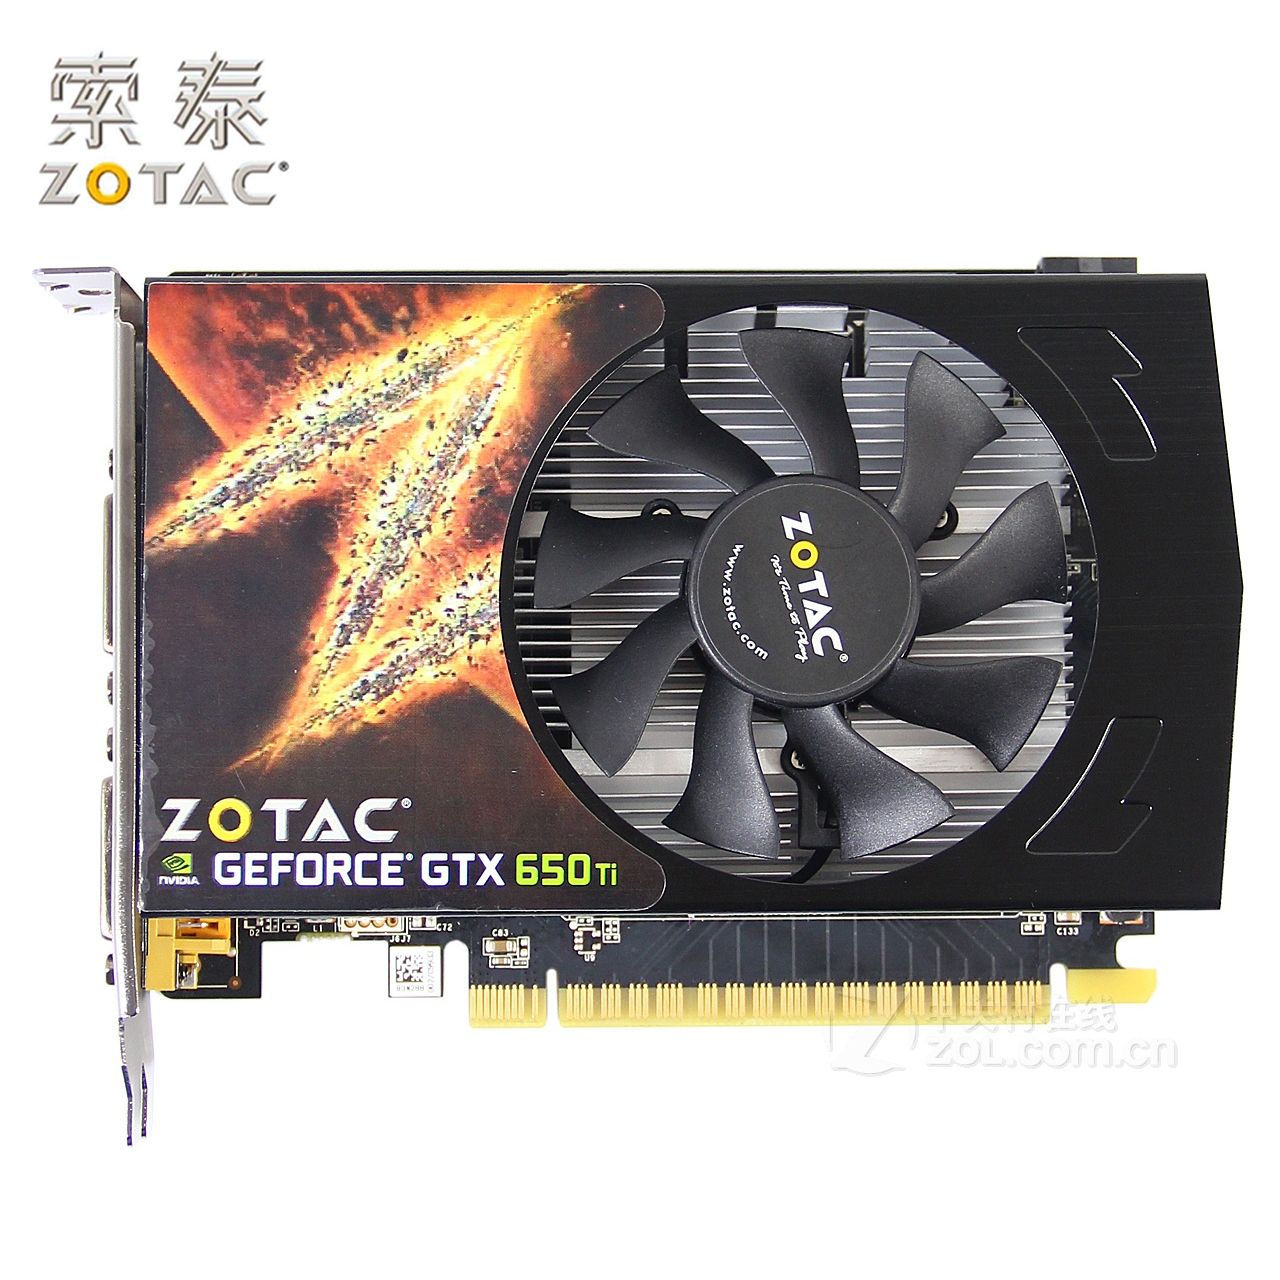 Original ZOTAC Video Cards GeForce GTX650Ti-1GD5 Thunder PA 1GB GDDR5 Graphics Card For NVIDIA Map GTX 650Ti GTX600 1GB Hdmi Dvi